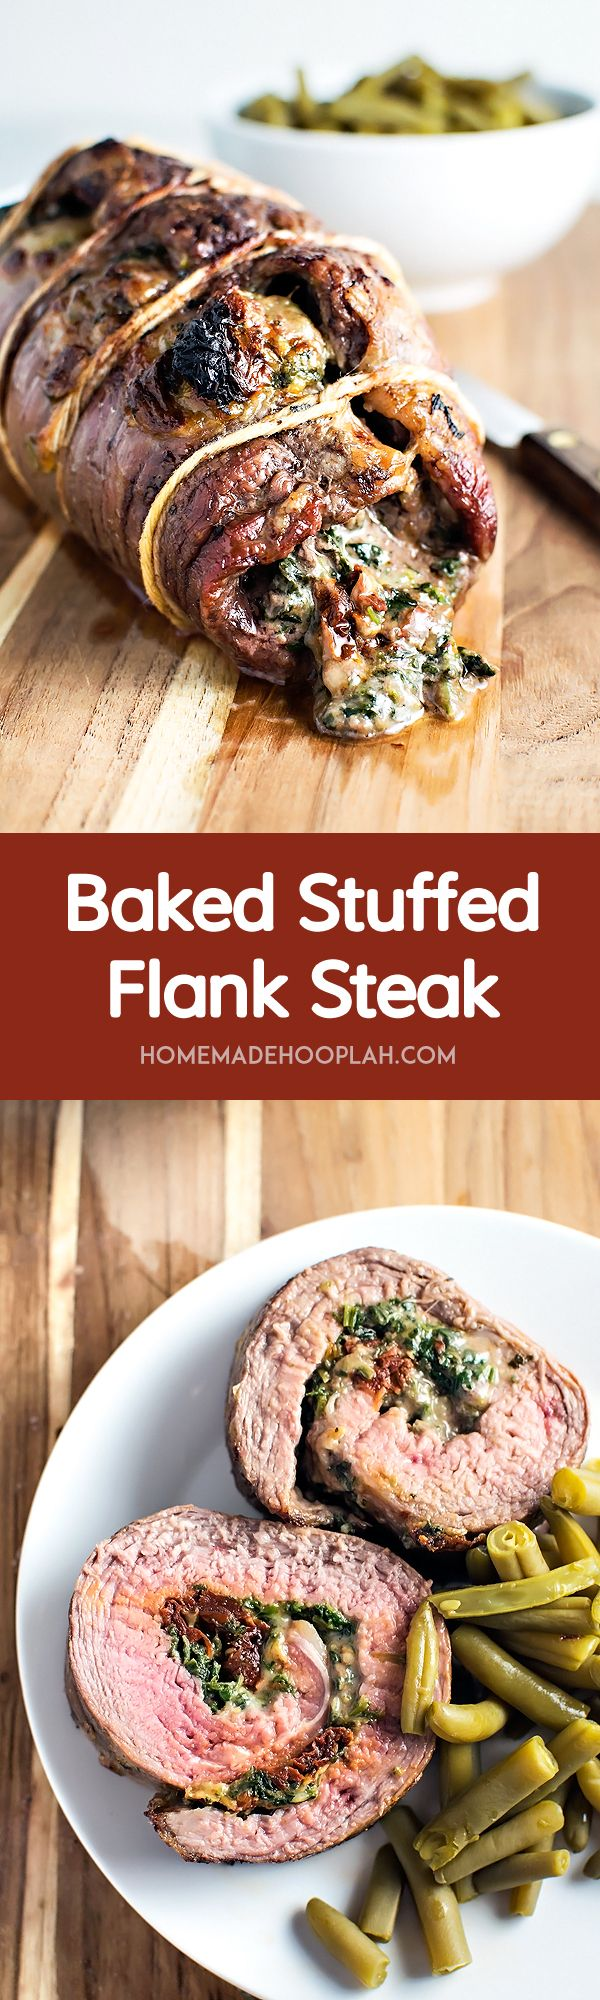 Baked Stuff Flank Steak! Spice up your boring steak dinner by baking a fine cut of meat with spinach, mozzarella, and sun dried tomatoes. | HomemadeHooplah.com